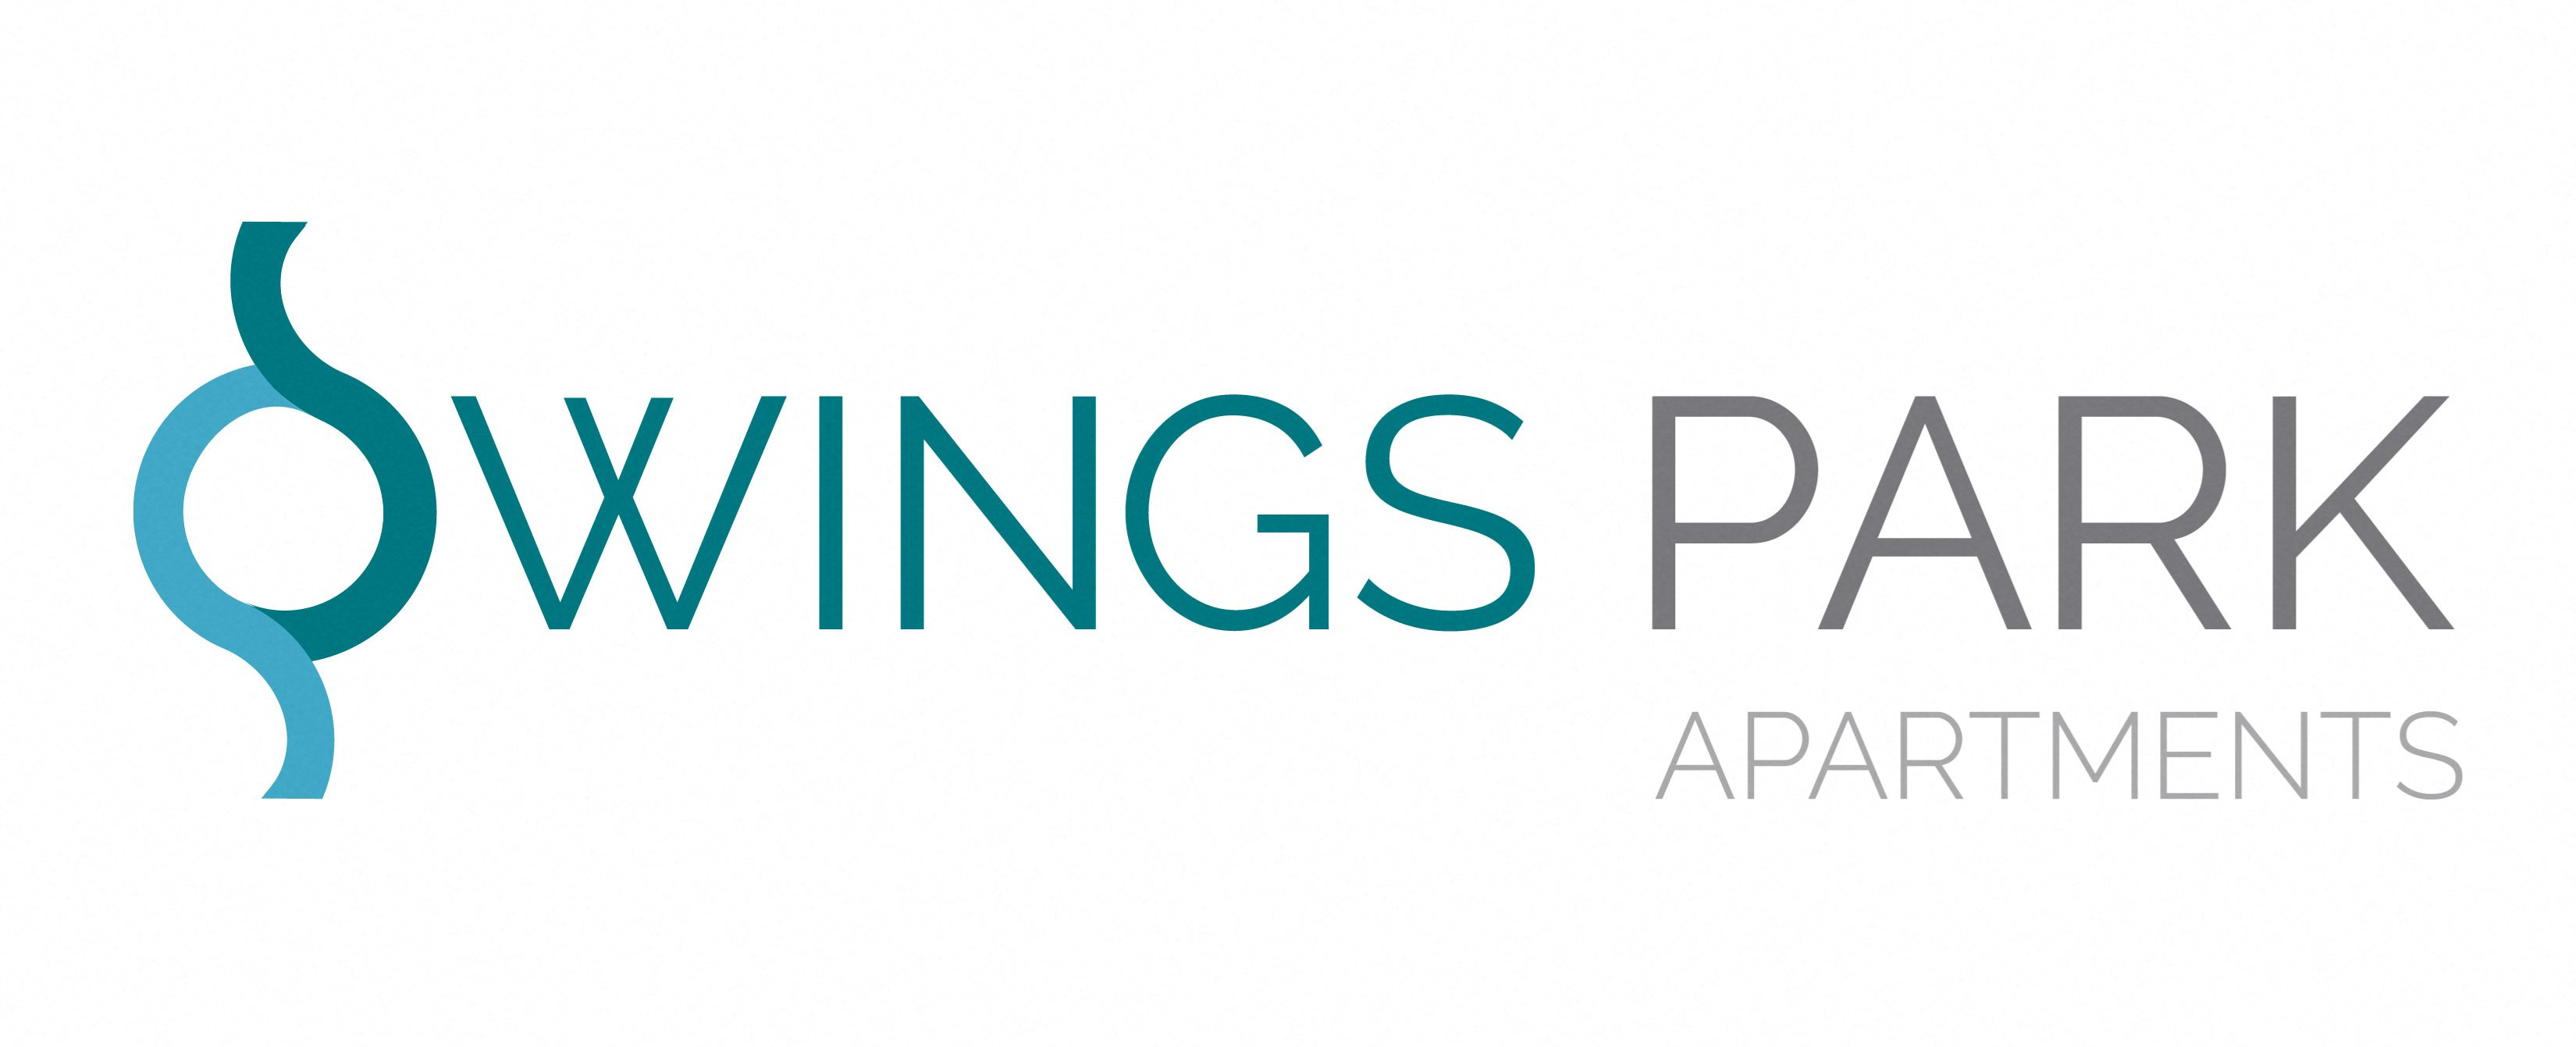 Owings Park Apartments Logo